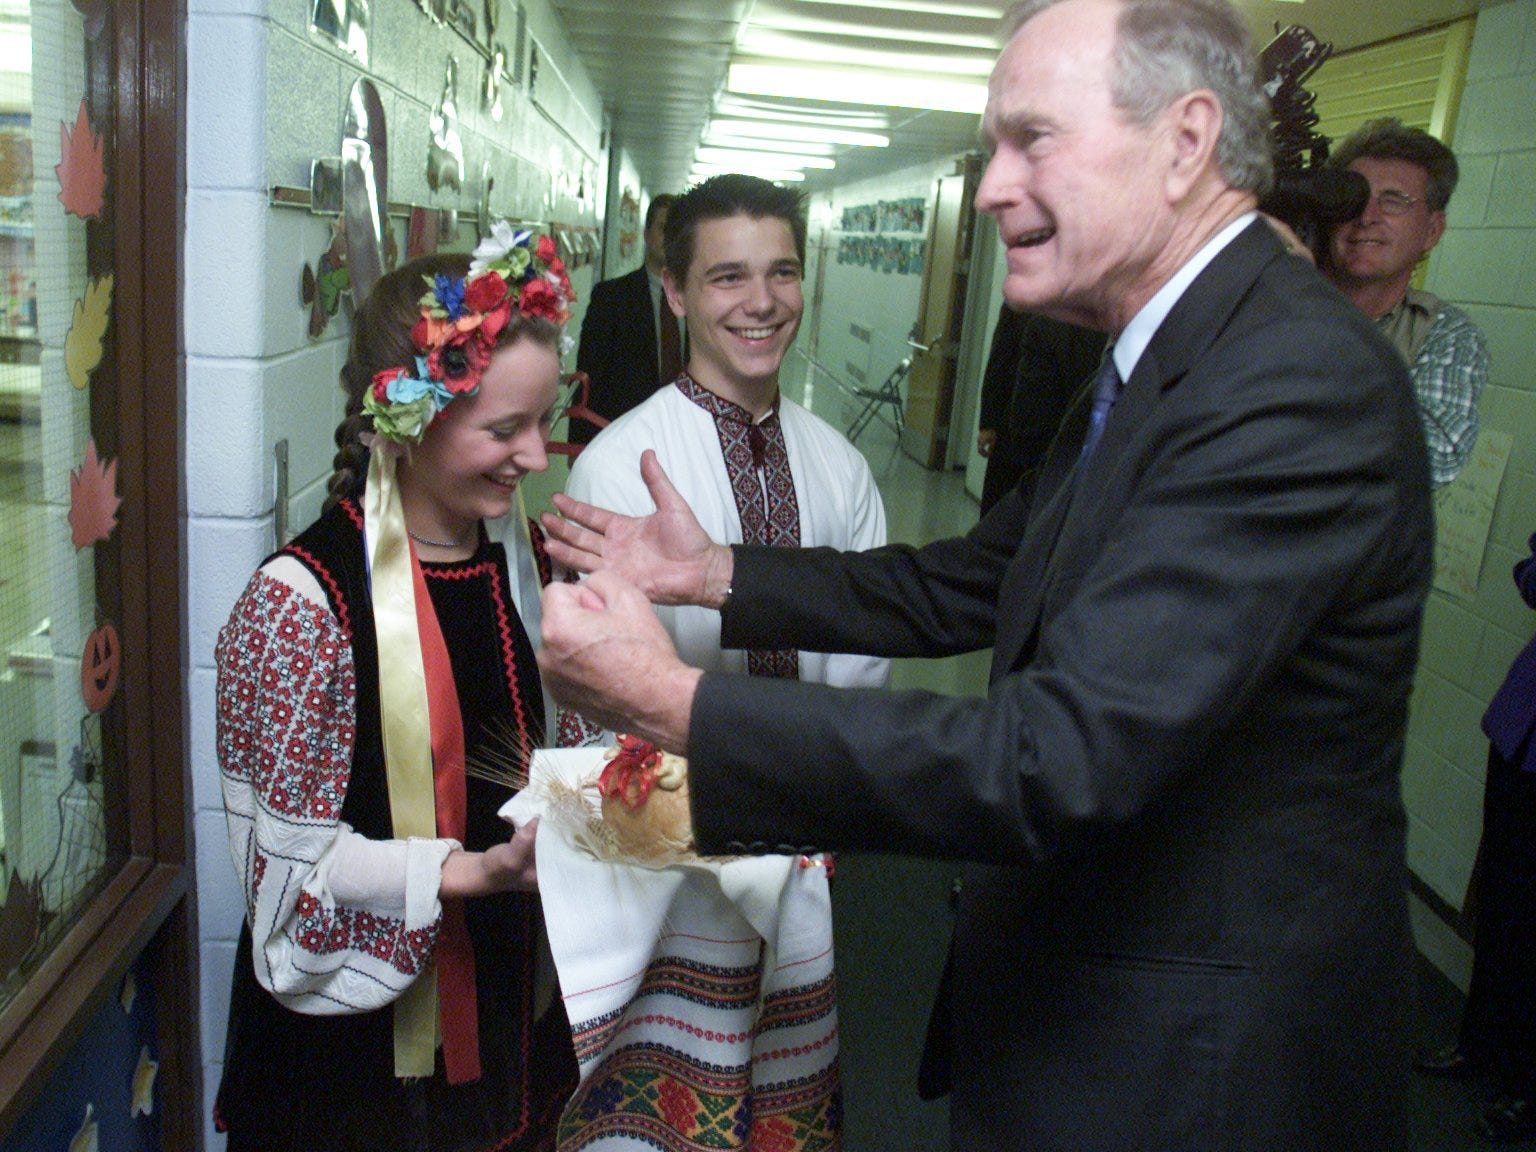 Former President George Bush  is greeted by Immaculate Conception Ukrainina Catholic School seniors Natalie Tobianski and Mark Tarnavsky in October 2000.   Tobianski, dressed in traditional Ukraine clothing from the region of Poltava and offers Bush bread and salt said to represent life and prosperity. Bush is visiting the Warren school in hopes of  drumming up support for his son George W. Bush who is running for the Presidency.